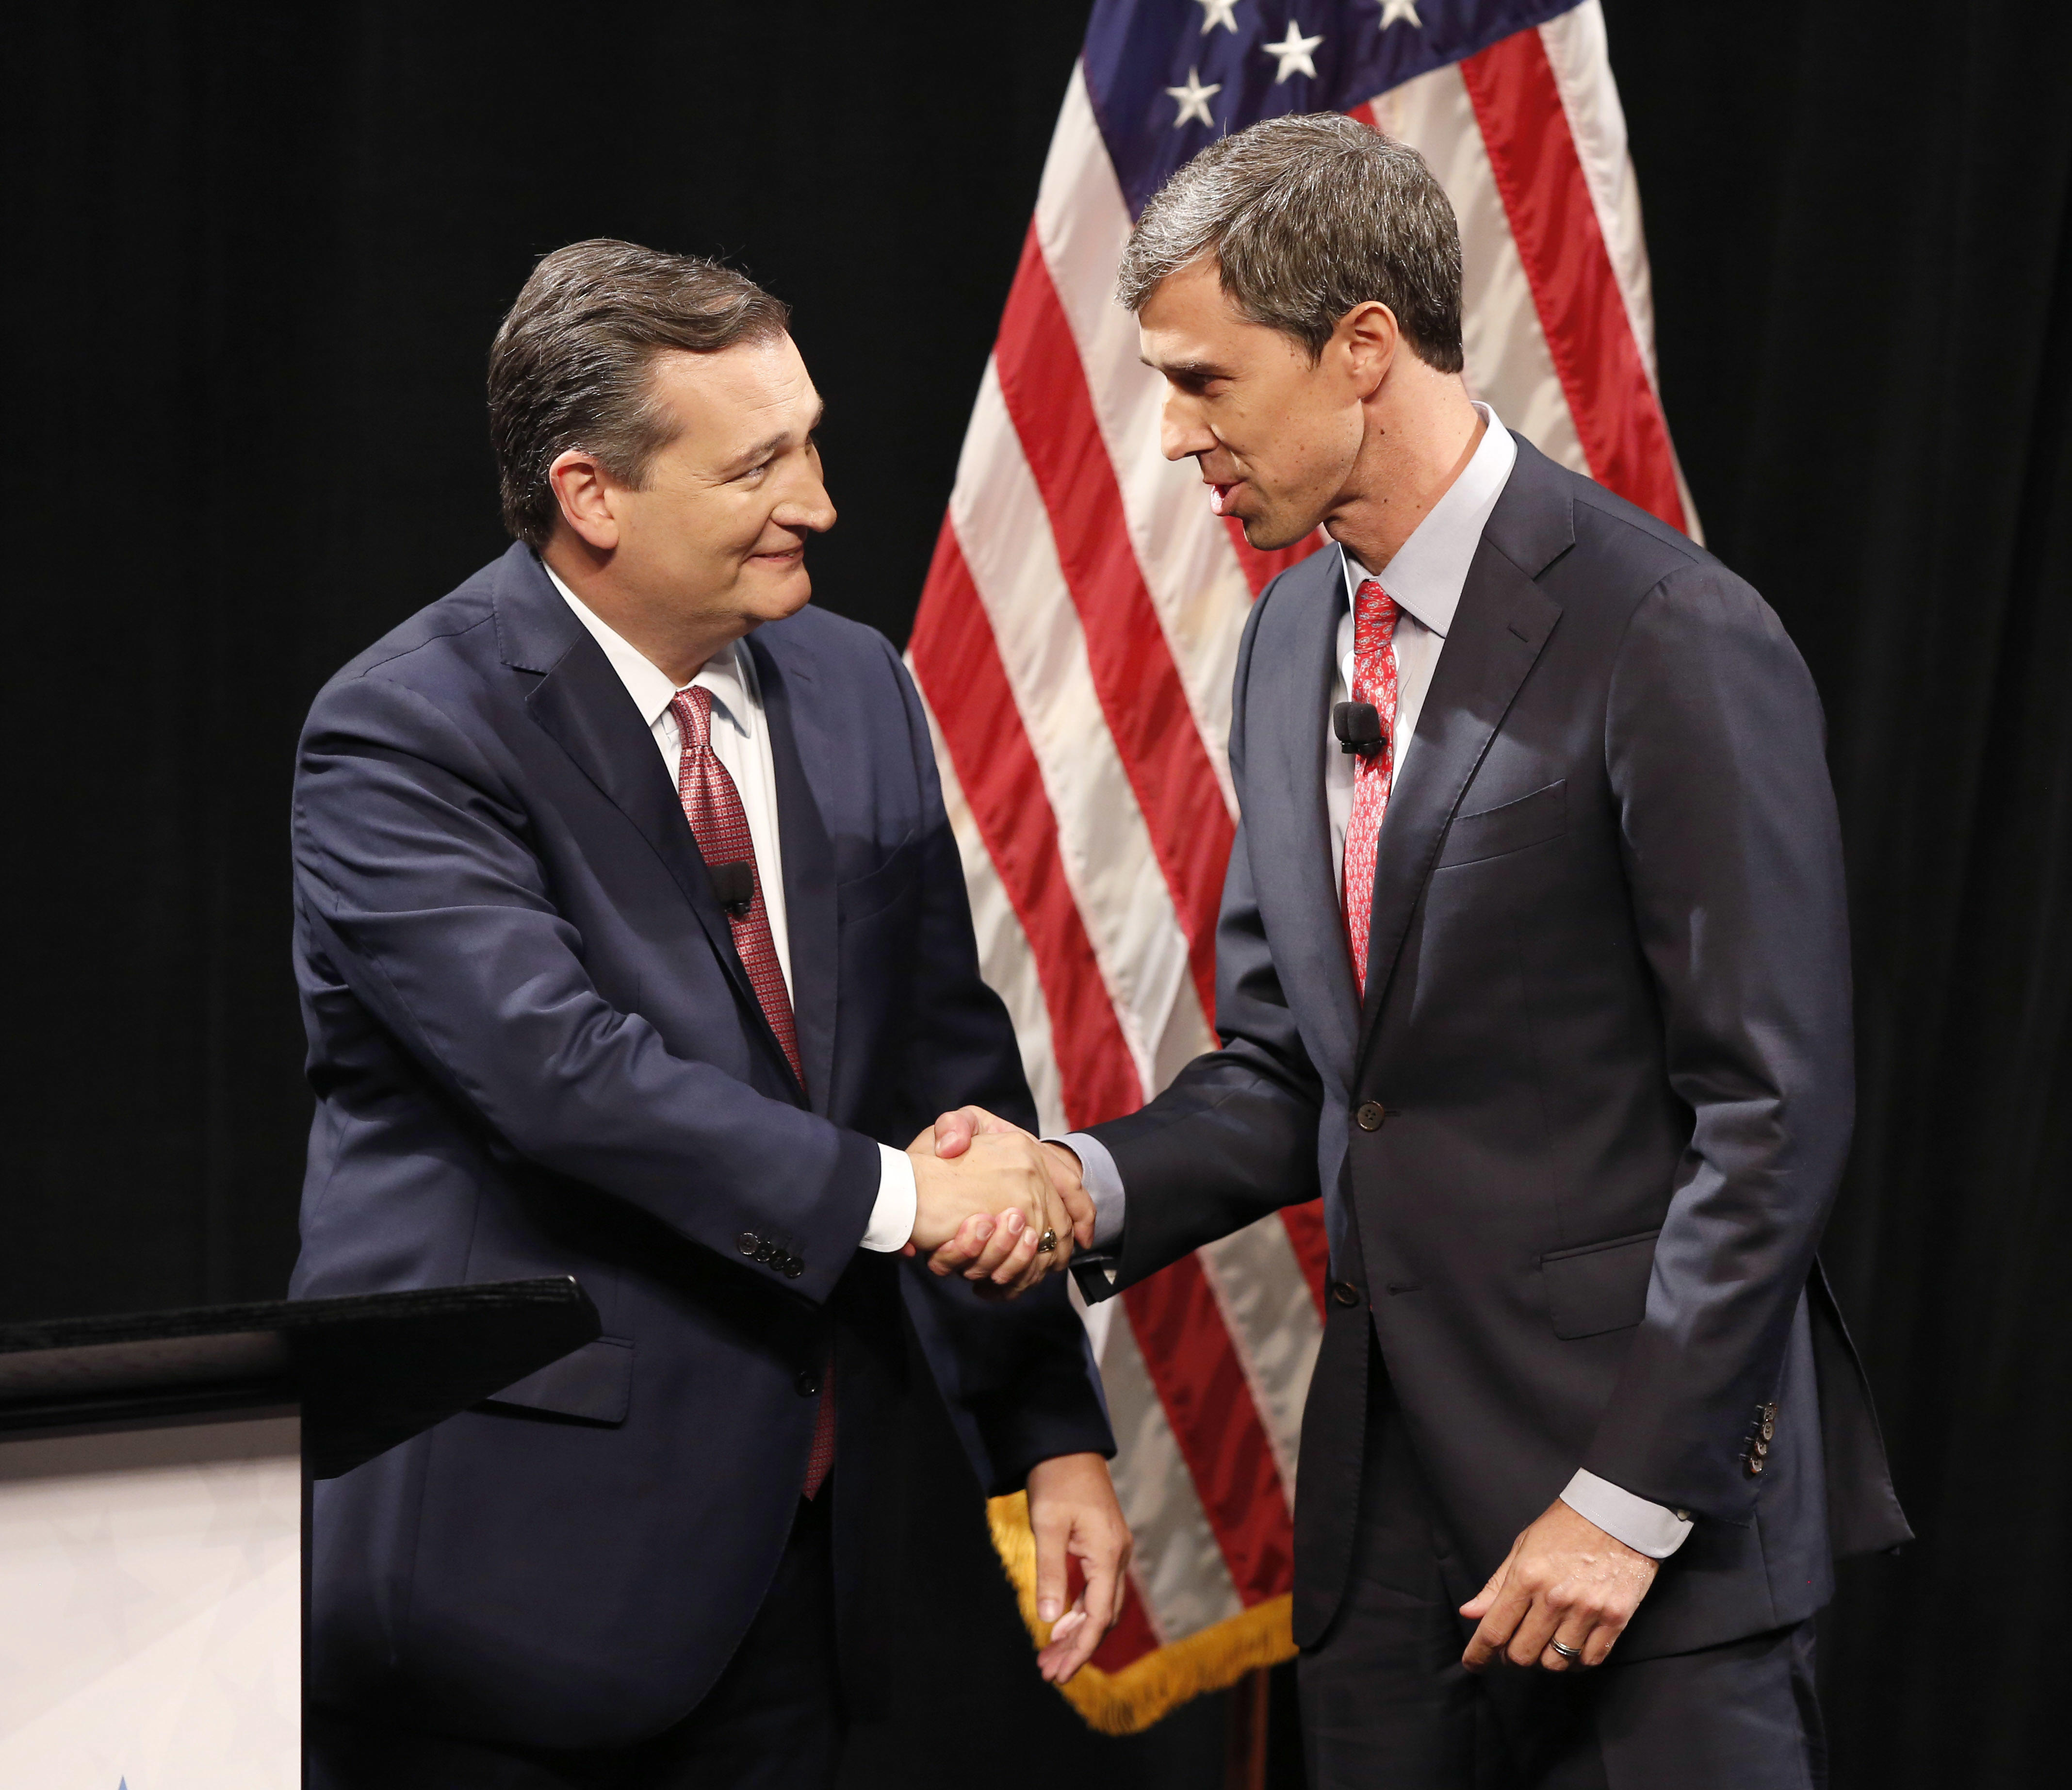 Ted Cruz And Beto Orourke Face Off In First Debate